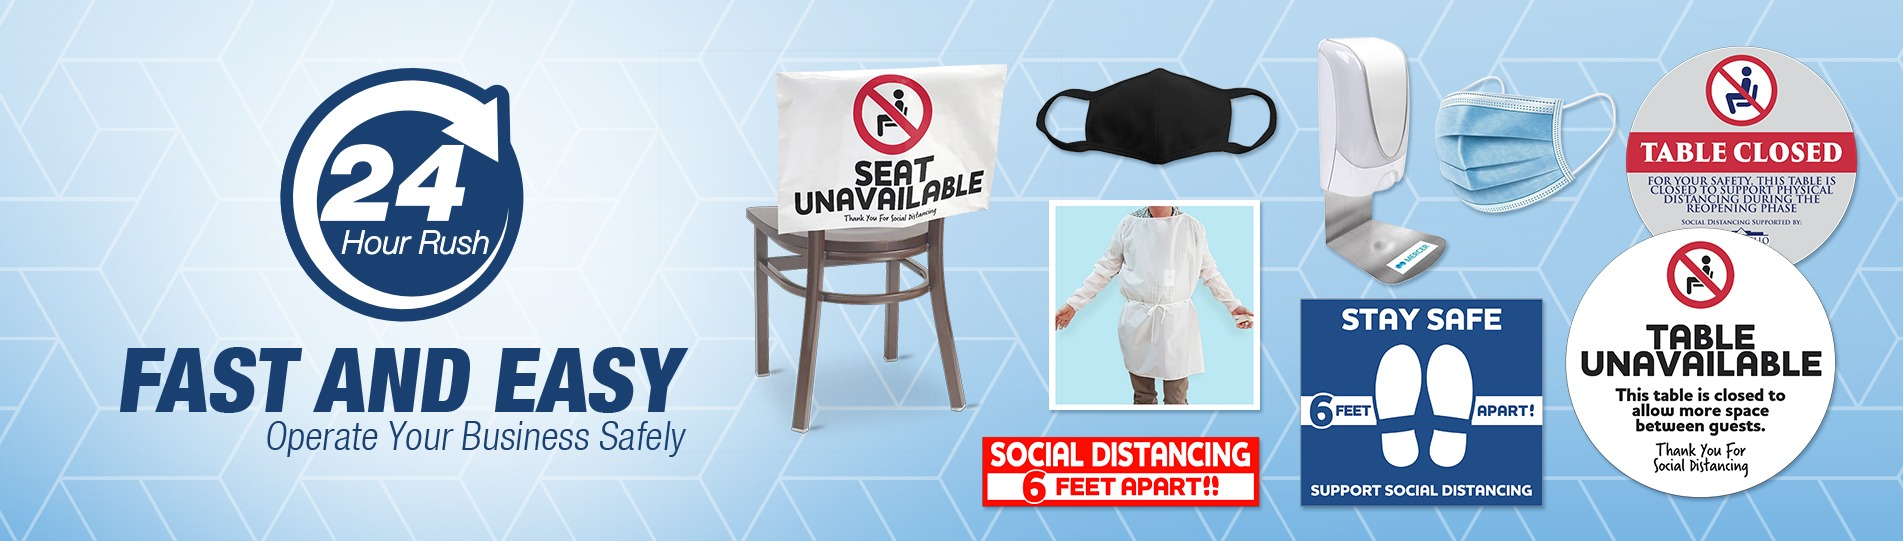 wholesale ppe rush health commercial fast shipping usa